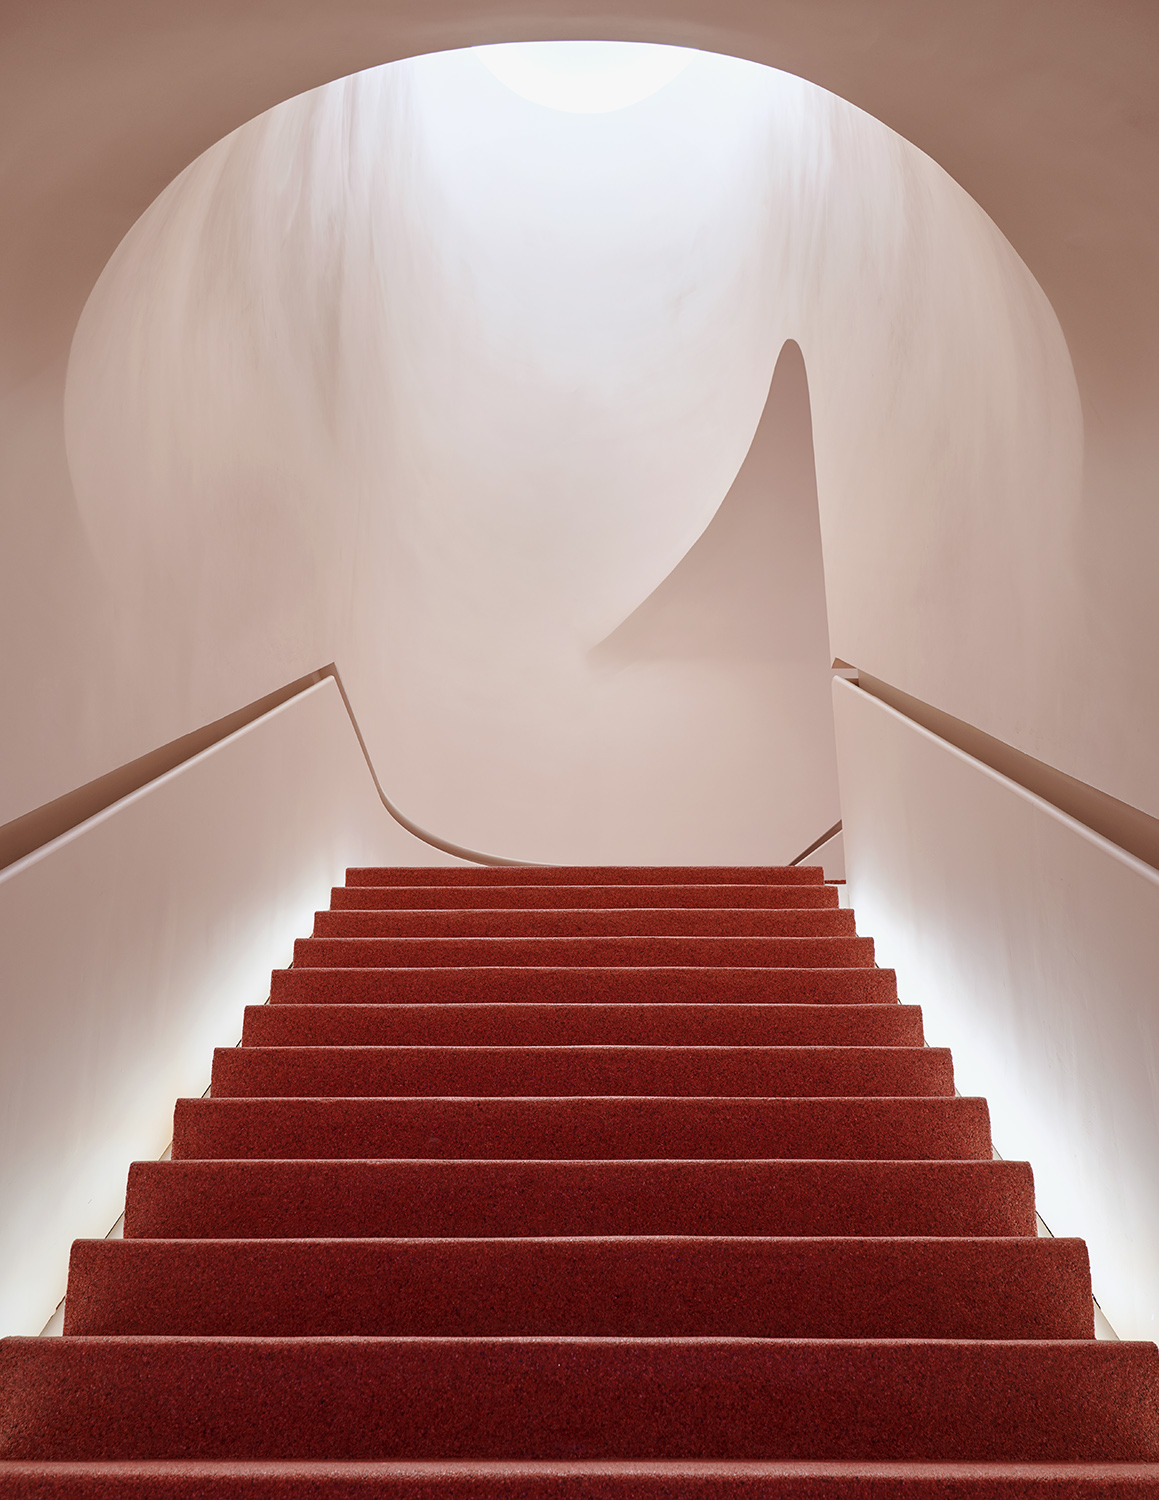 Entrance to Glossier flagship.